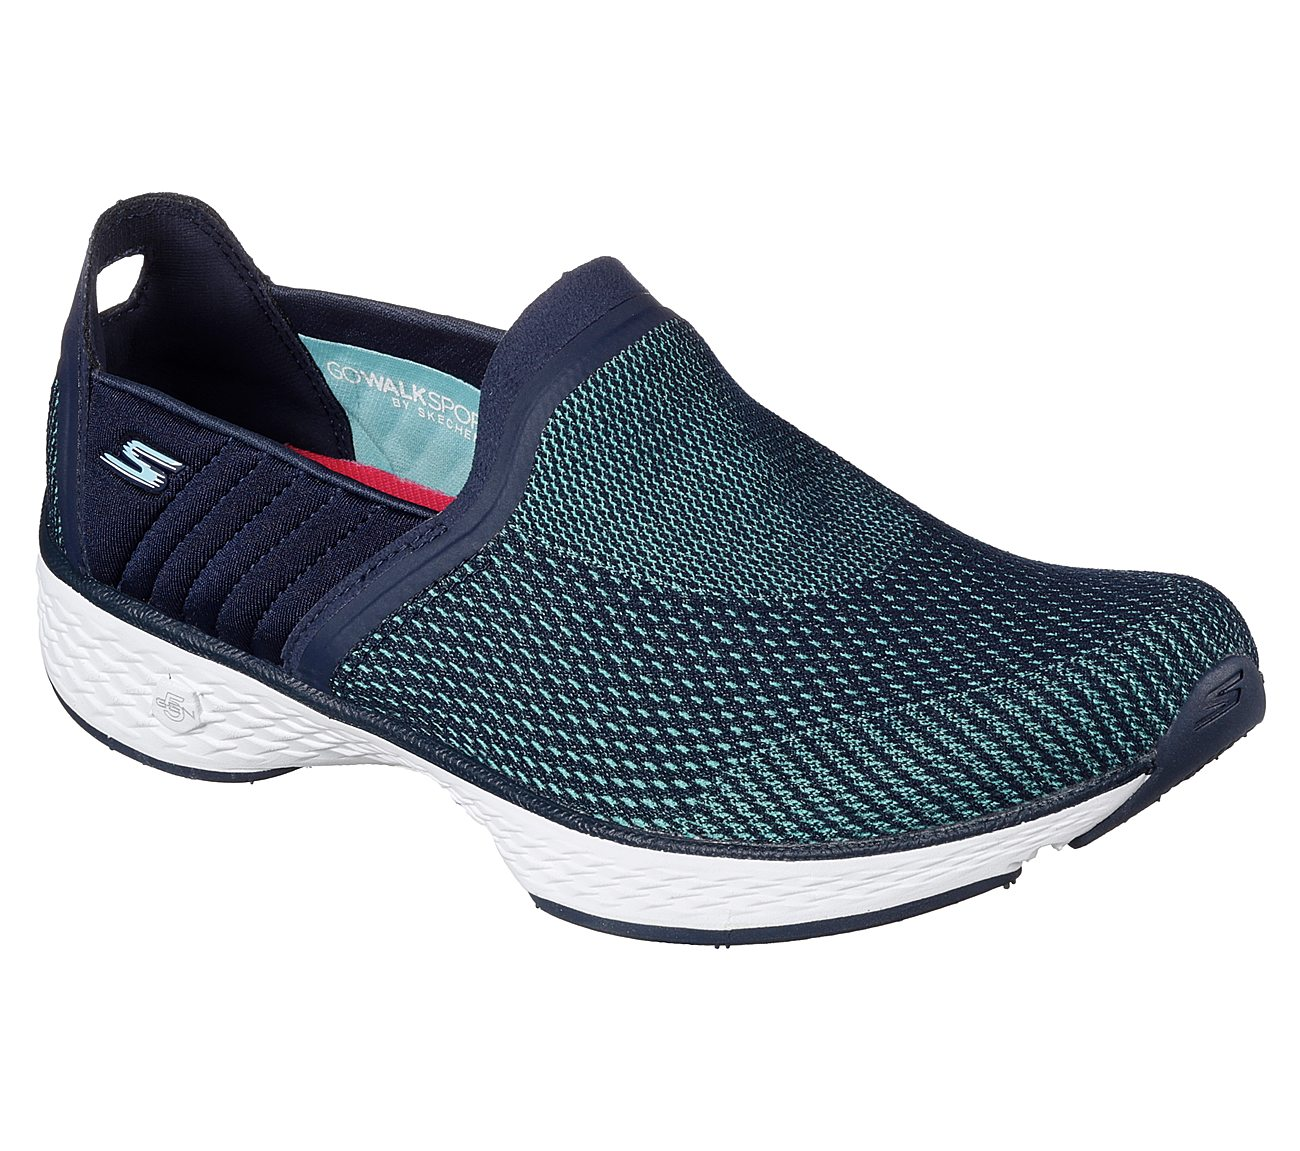 skechers go walk gen 5